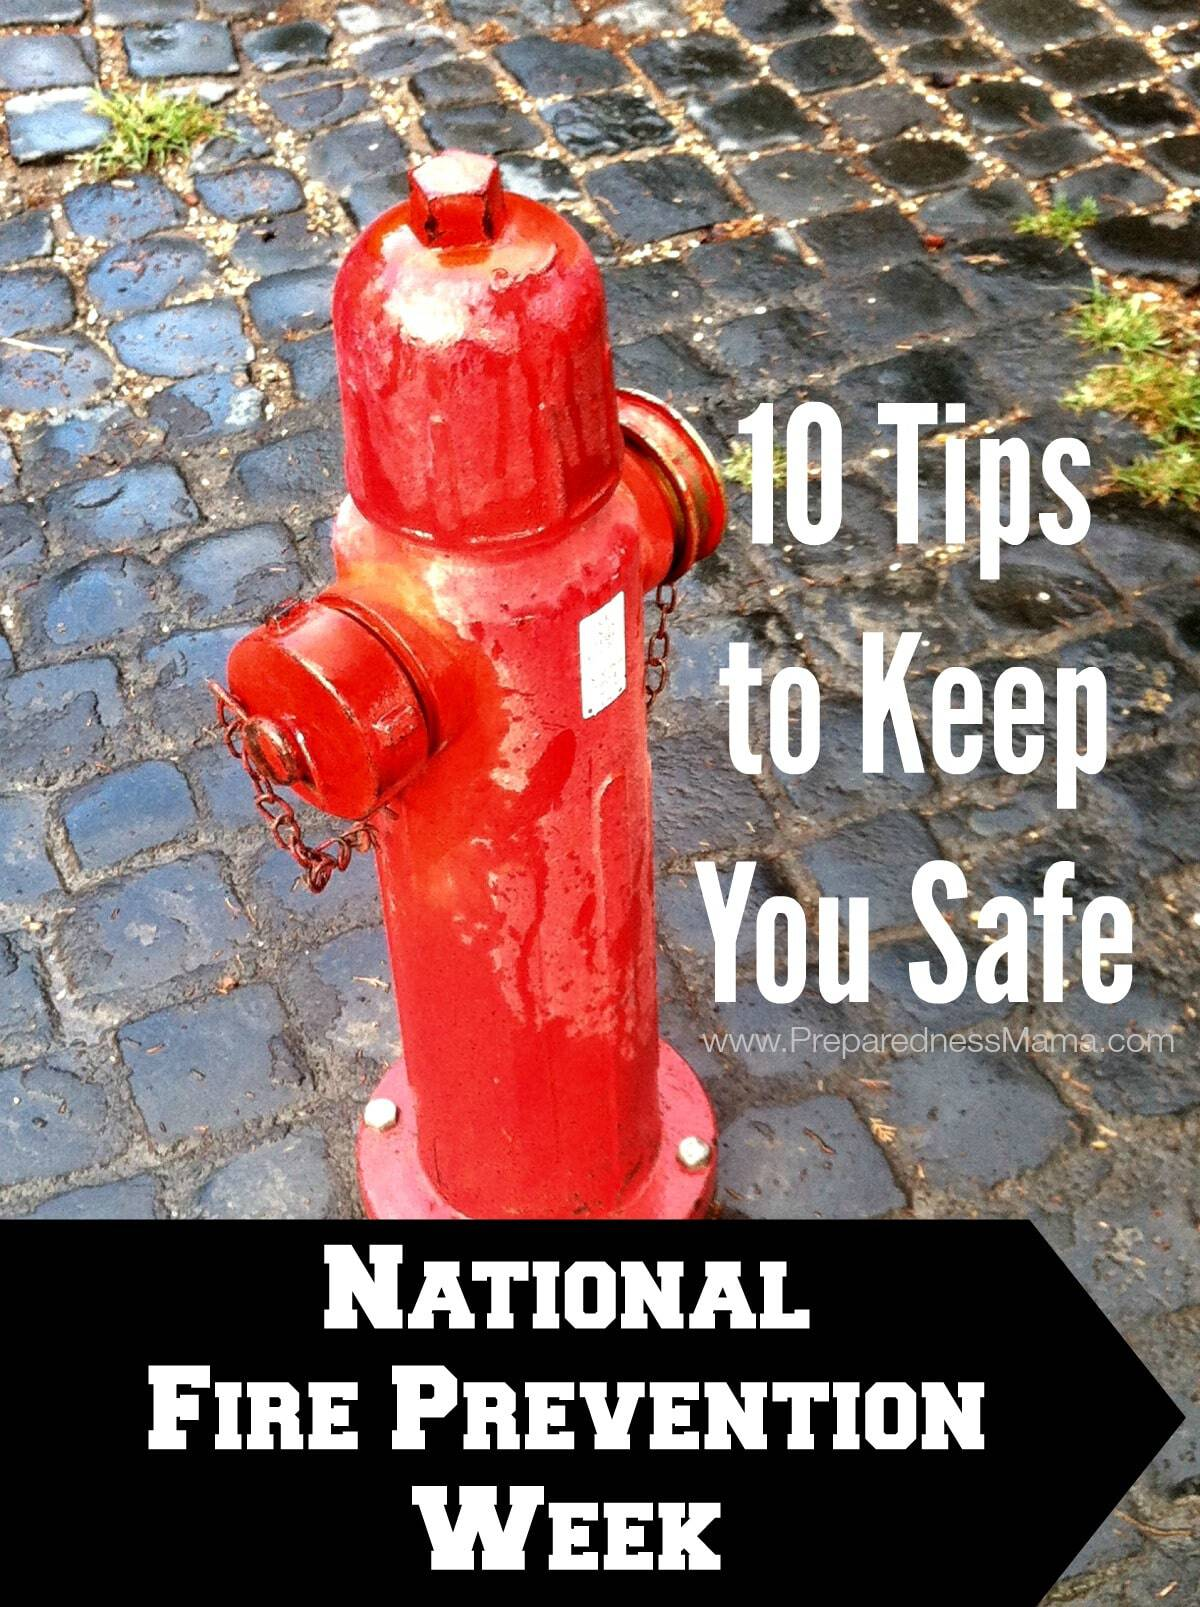 What Every Empowered Mom Should Know About Fire Prevention